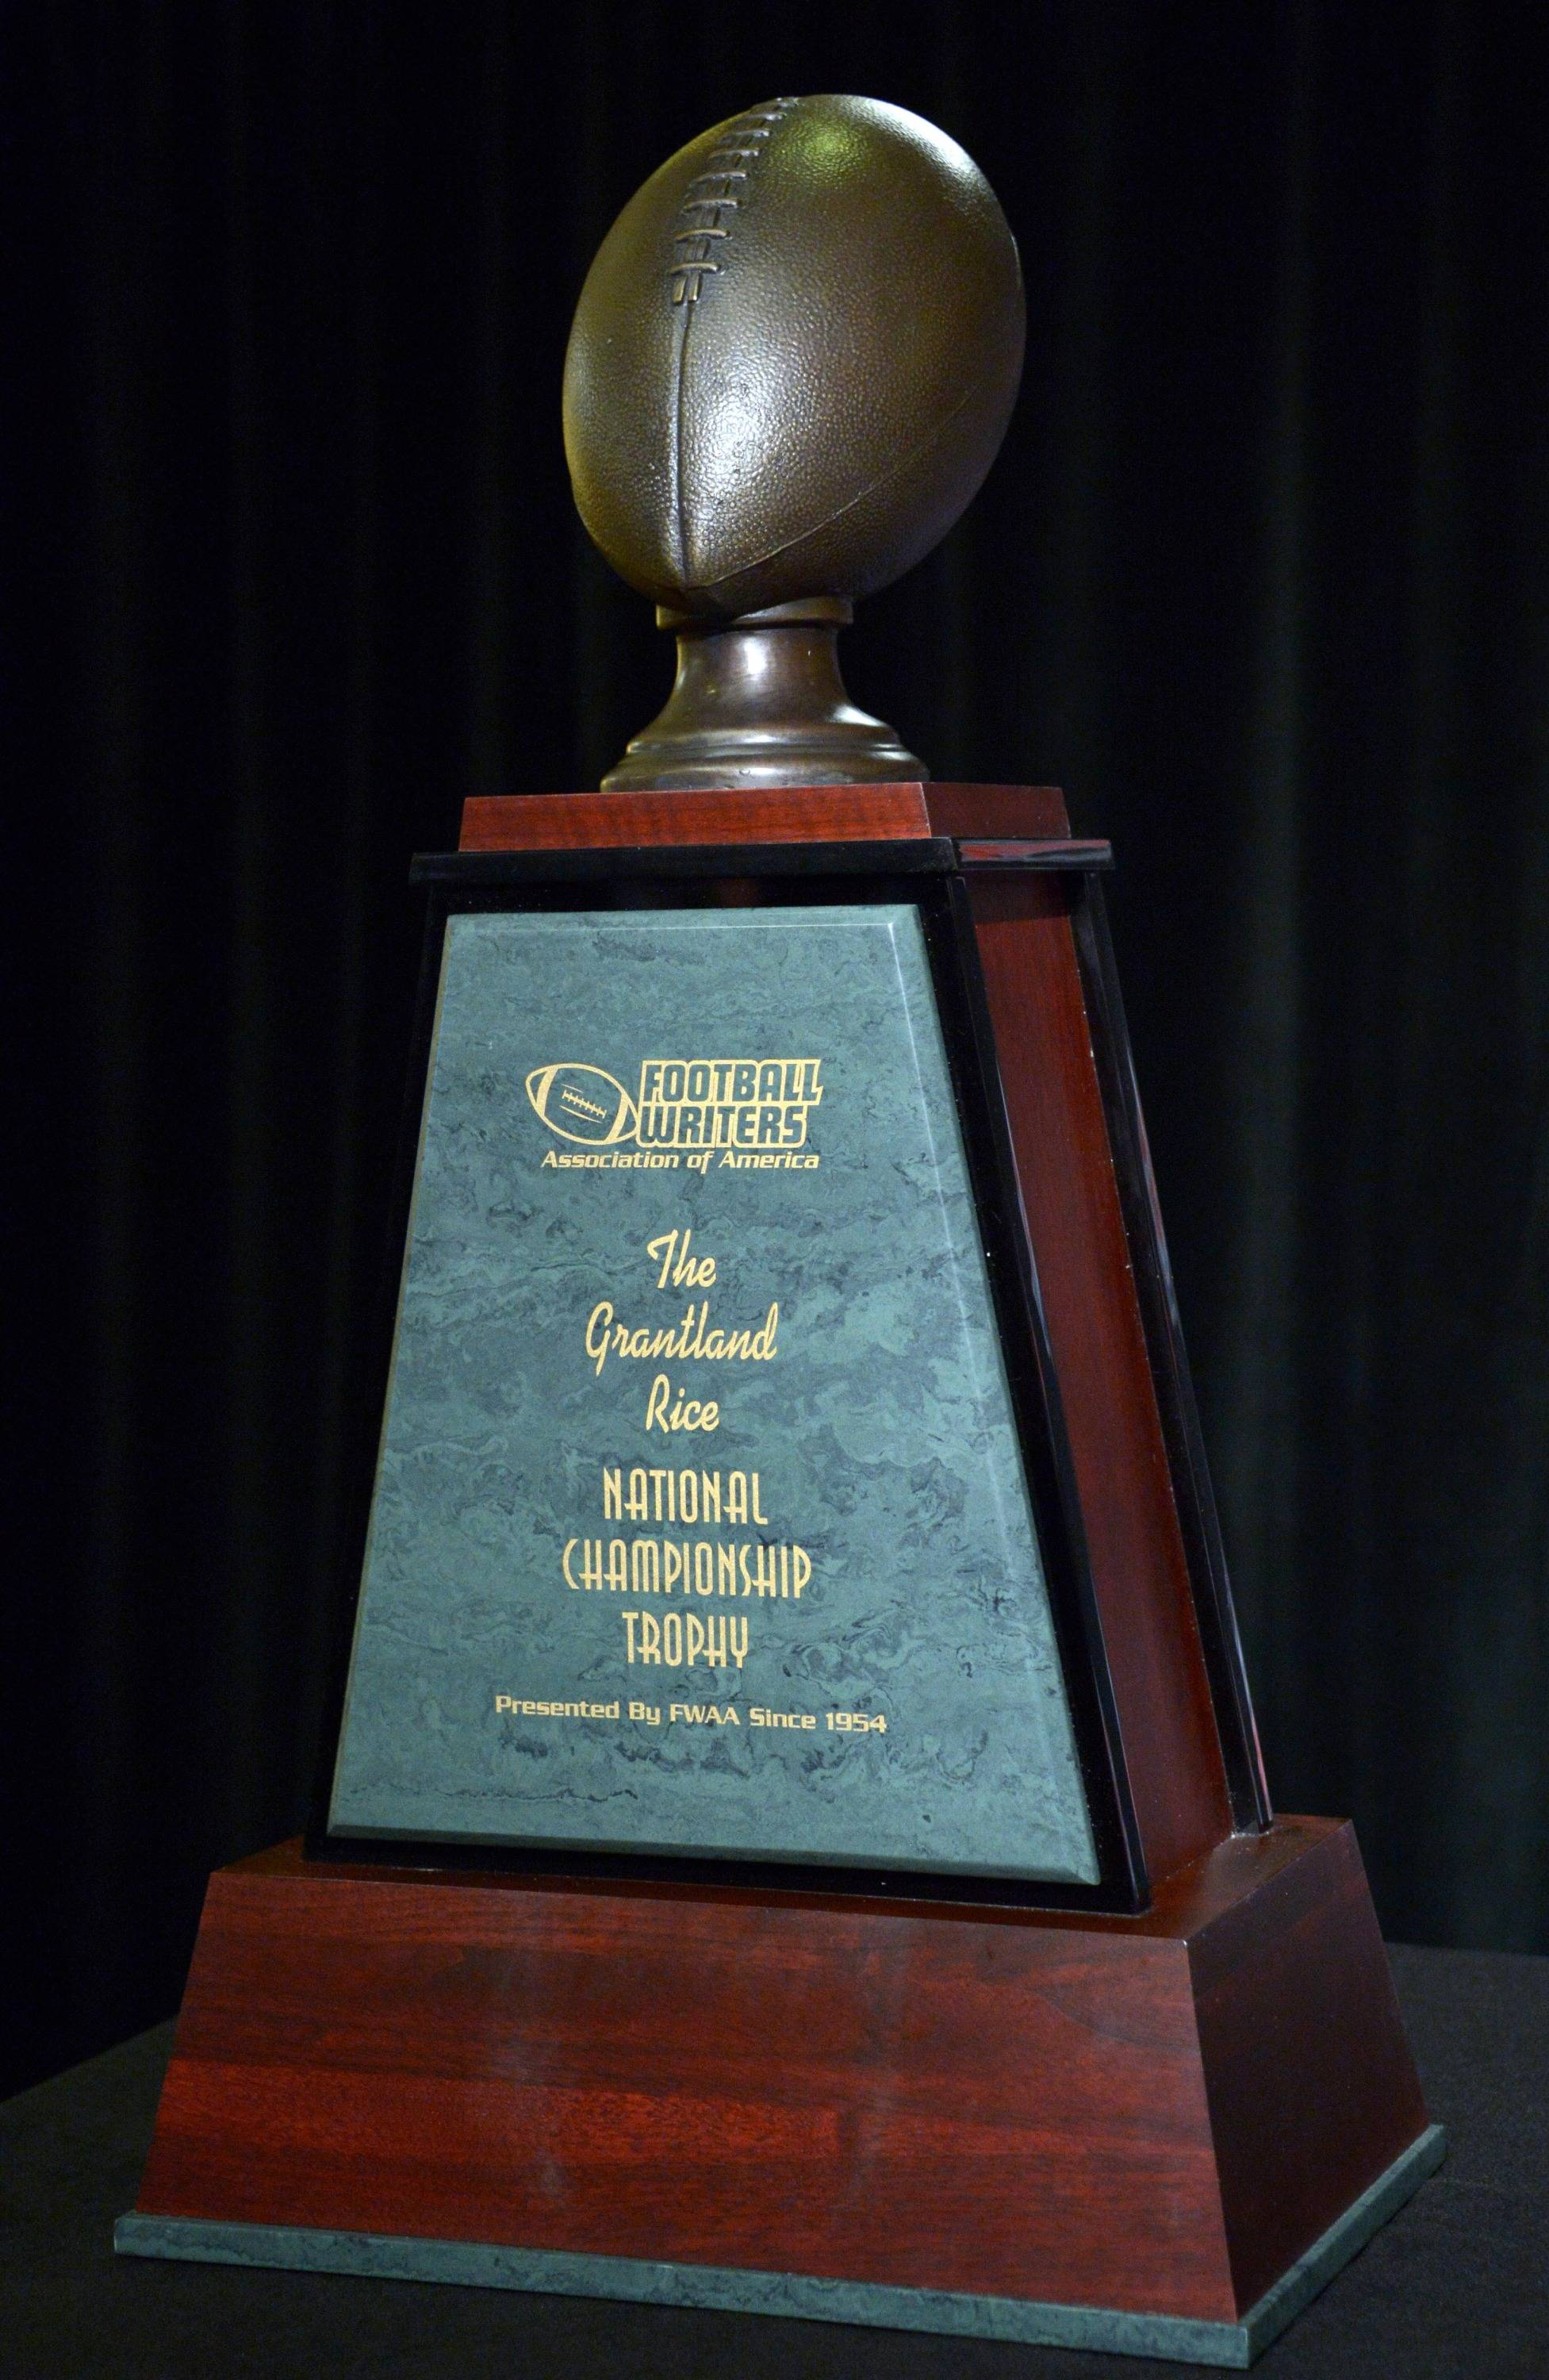 General view of the Grantland Rice trophy presented by the Football Writers Association of America at 2014 BCS National Championship press conference at Newport Beach Marriott. Mandatory Credit: Kirby Lee-USA TODAY Sports